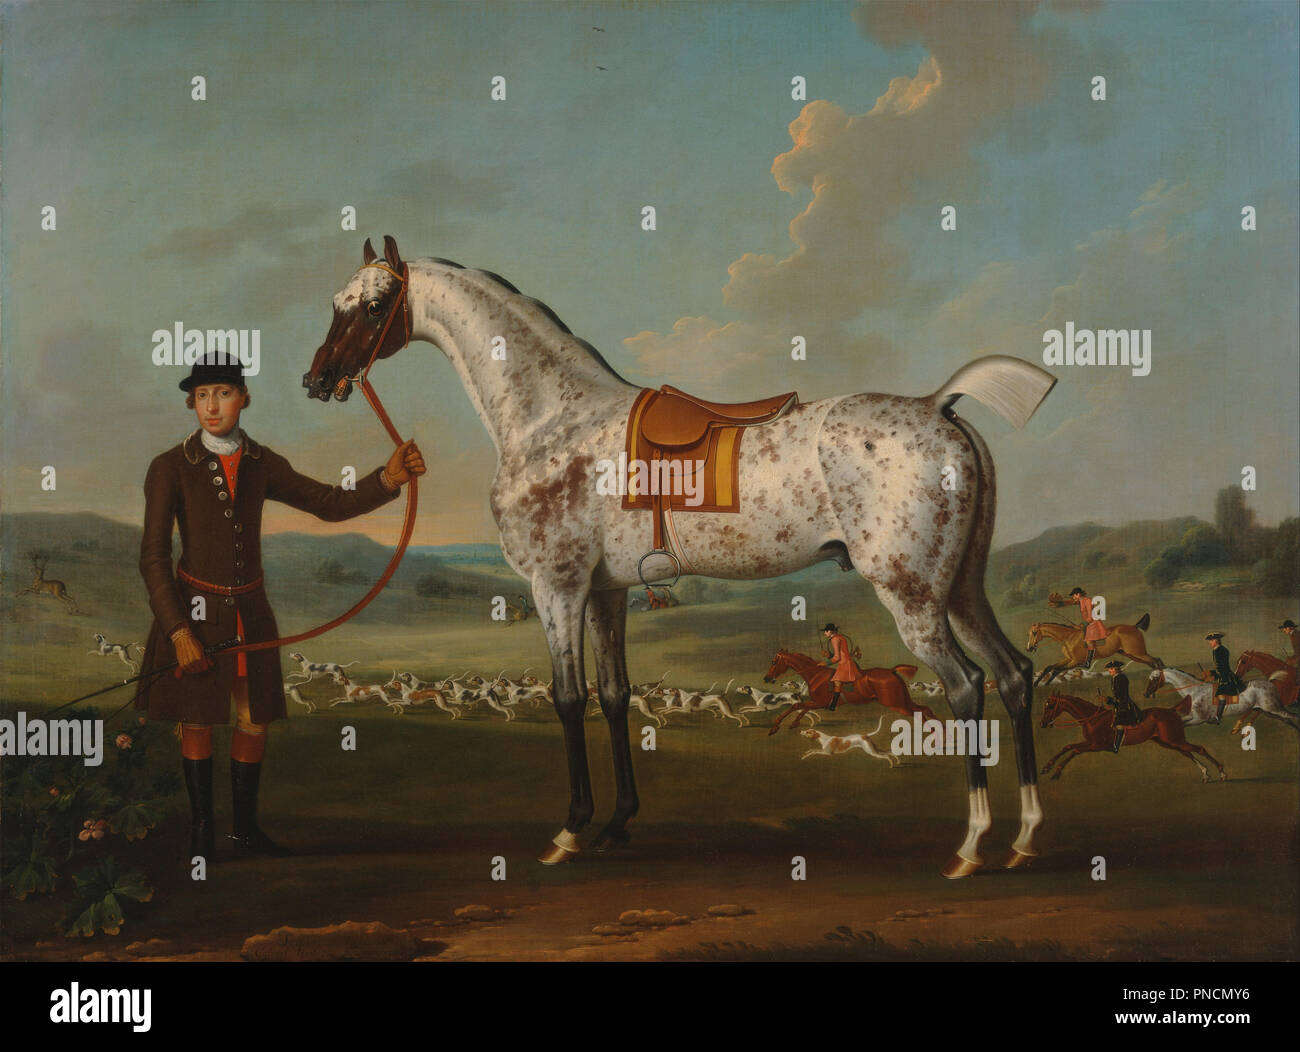 Scipio, a spotted hunter, the property of Colonel Roche. Date/Period: Ca. 1750. Painting. Oil on canvas. Height: 991 mm (39.01 in); Width: 1,340 mm (52.75 in). Author: Thomas Spencer. Stock Photo